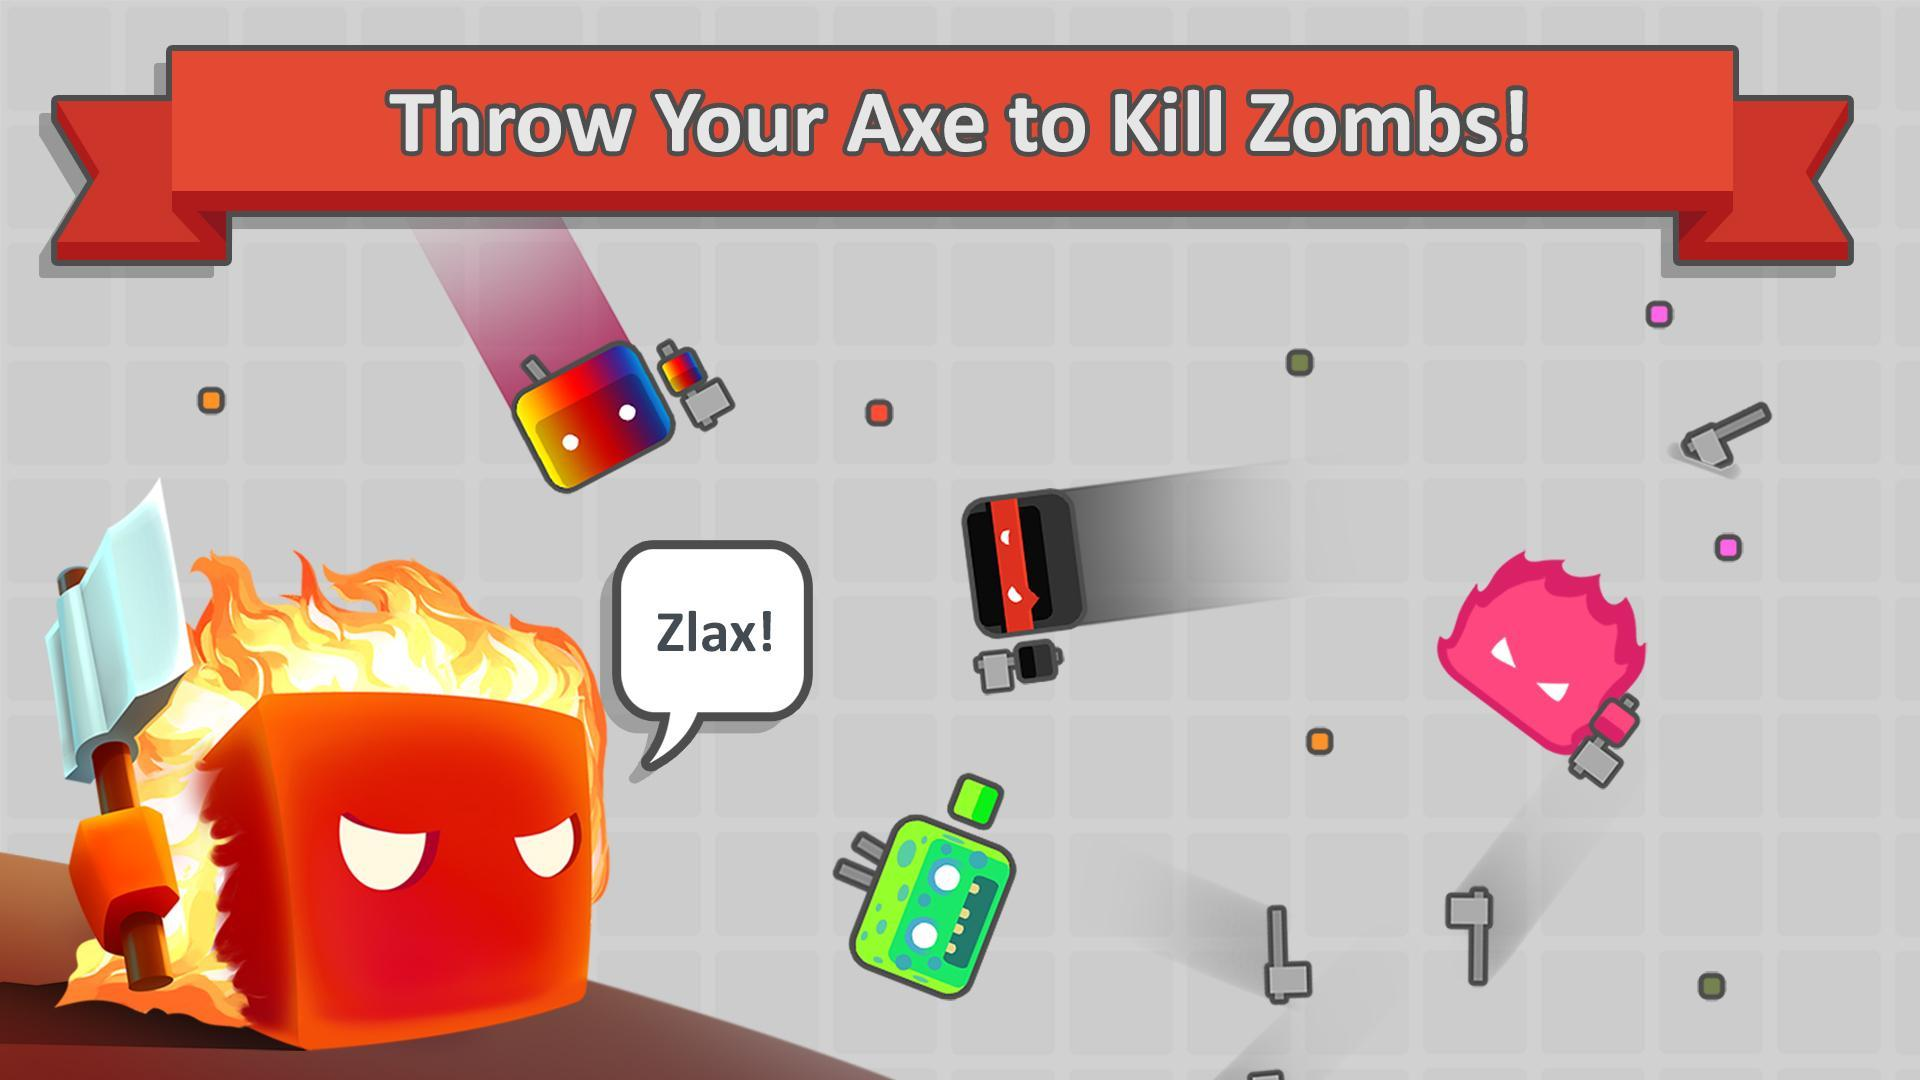 Zlax.io Zombs Luv Ax 1.9.1 Screenshot 11